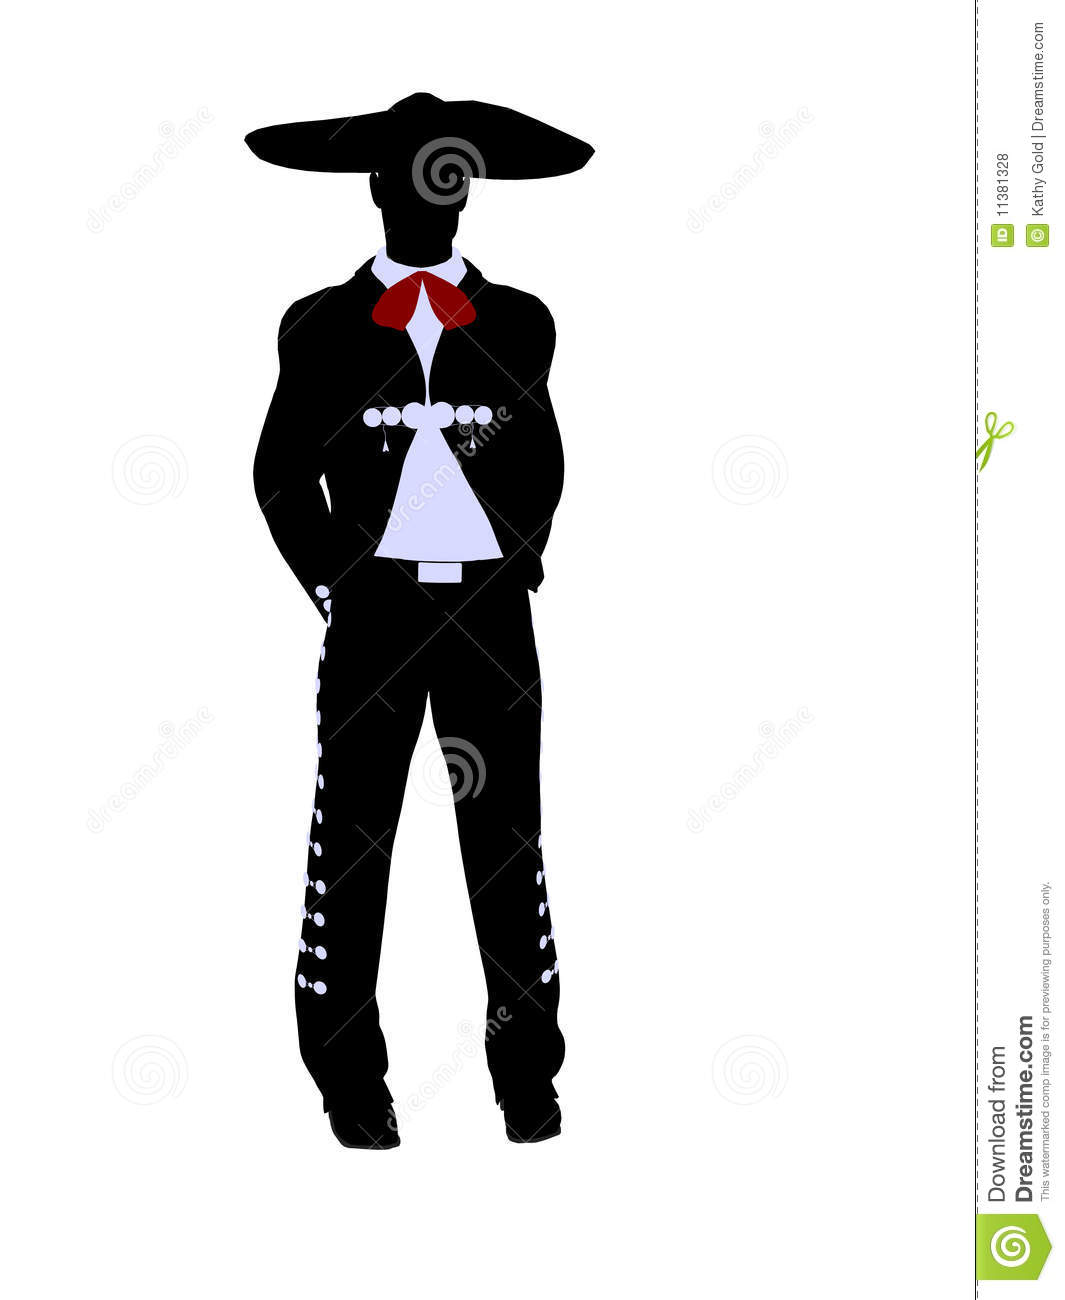 Gallery For > Folklorico Clipart Silhouette